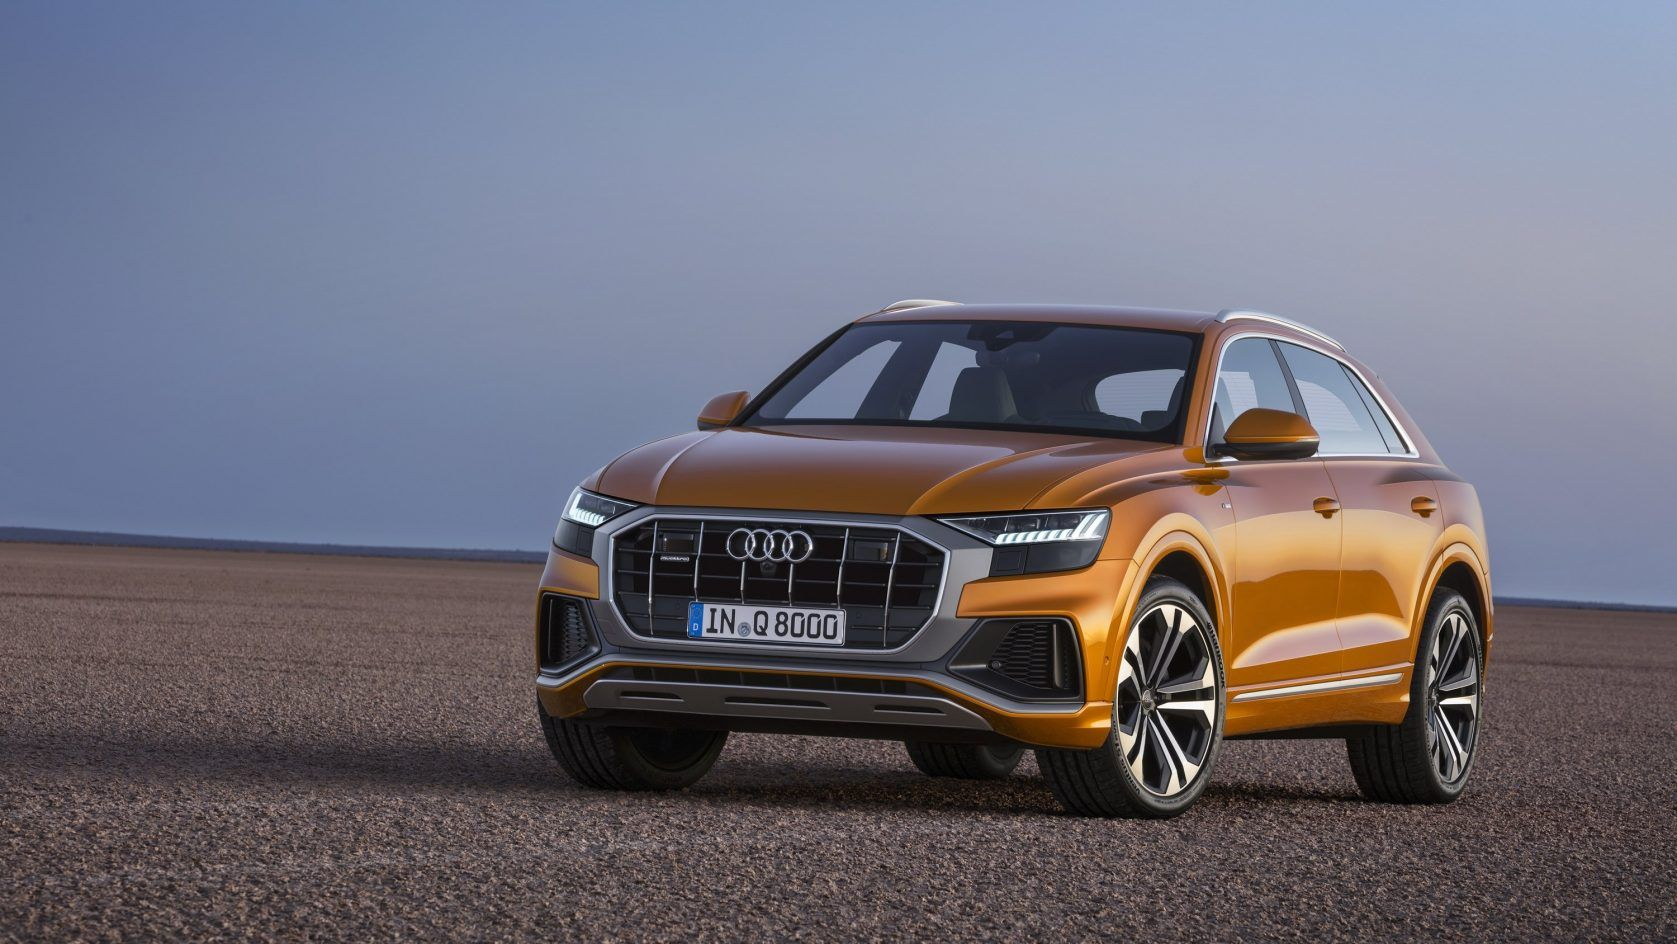 Like The Arrivals New 2020 Audi Q6 Will Have Its Own Advancement Nevertheless The Most Remarkable Thing Concerning This Model Is Its Building And Constructio